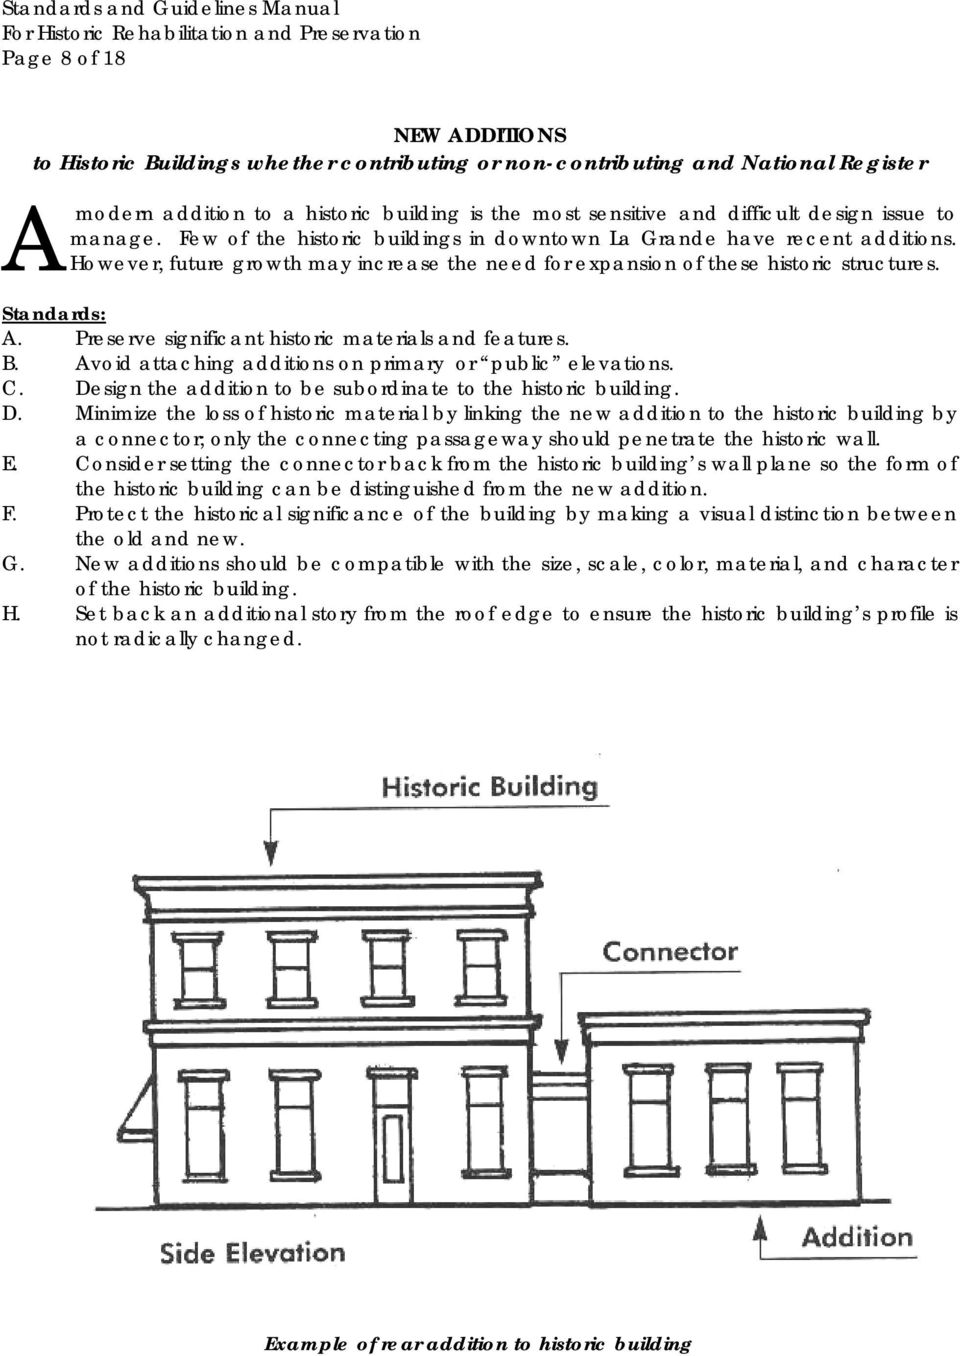 Preserve significant historic materials and features. B. Avoid attaching additions on primary or public elevations. C. De